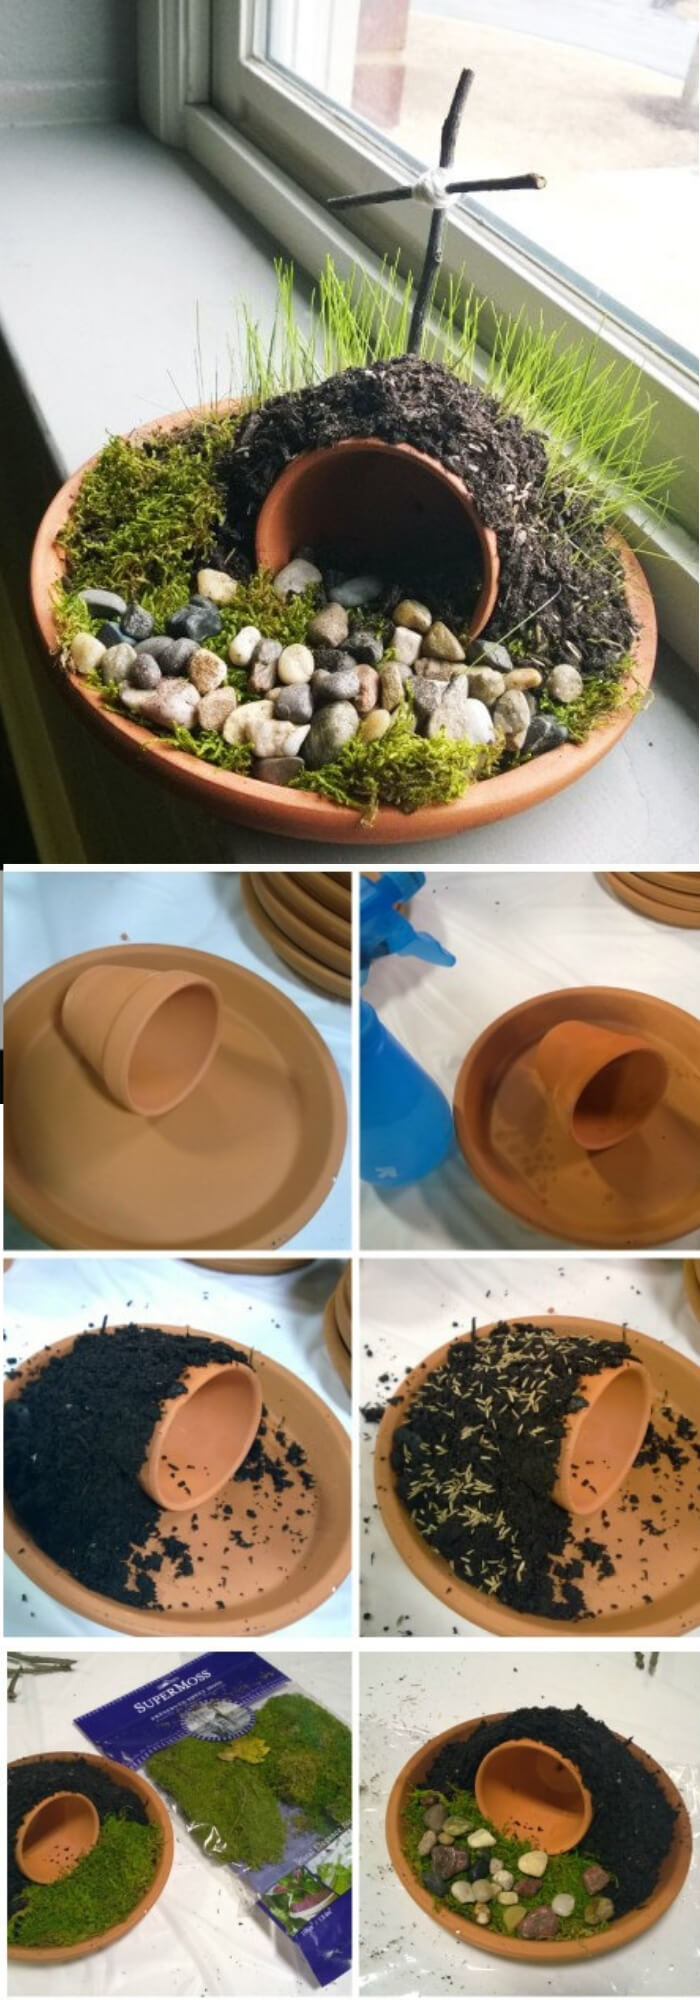 Resurrection garden for your kids   Creative Easter Garden Projects & Ideas Your Kids Will Love